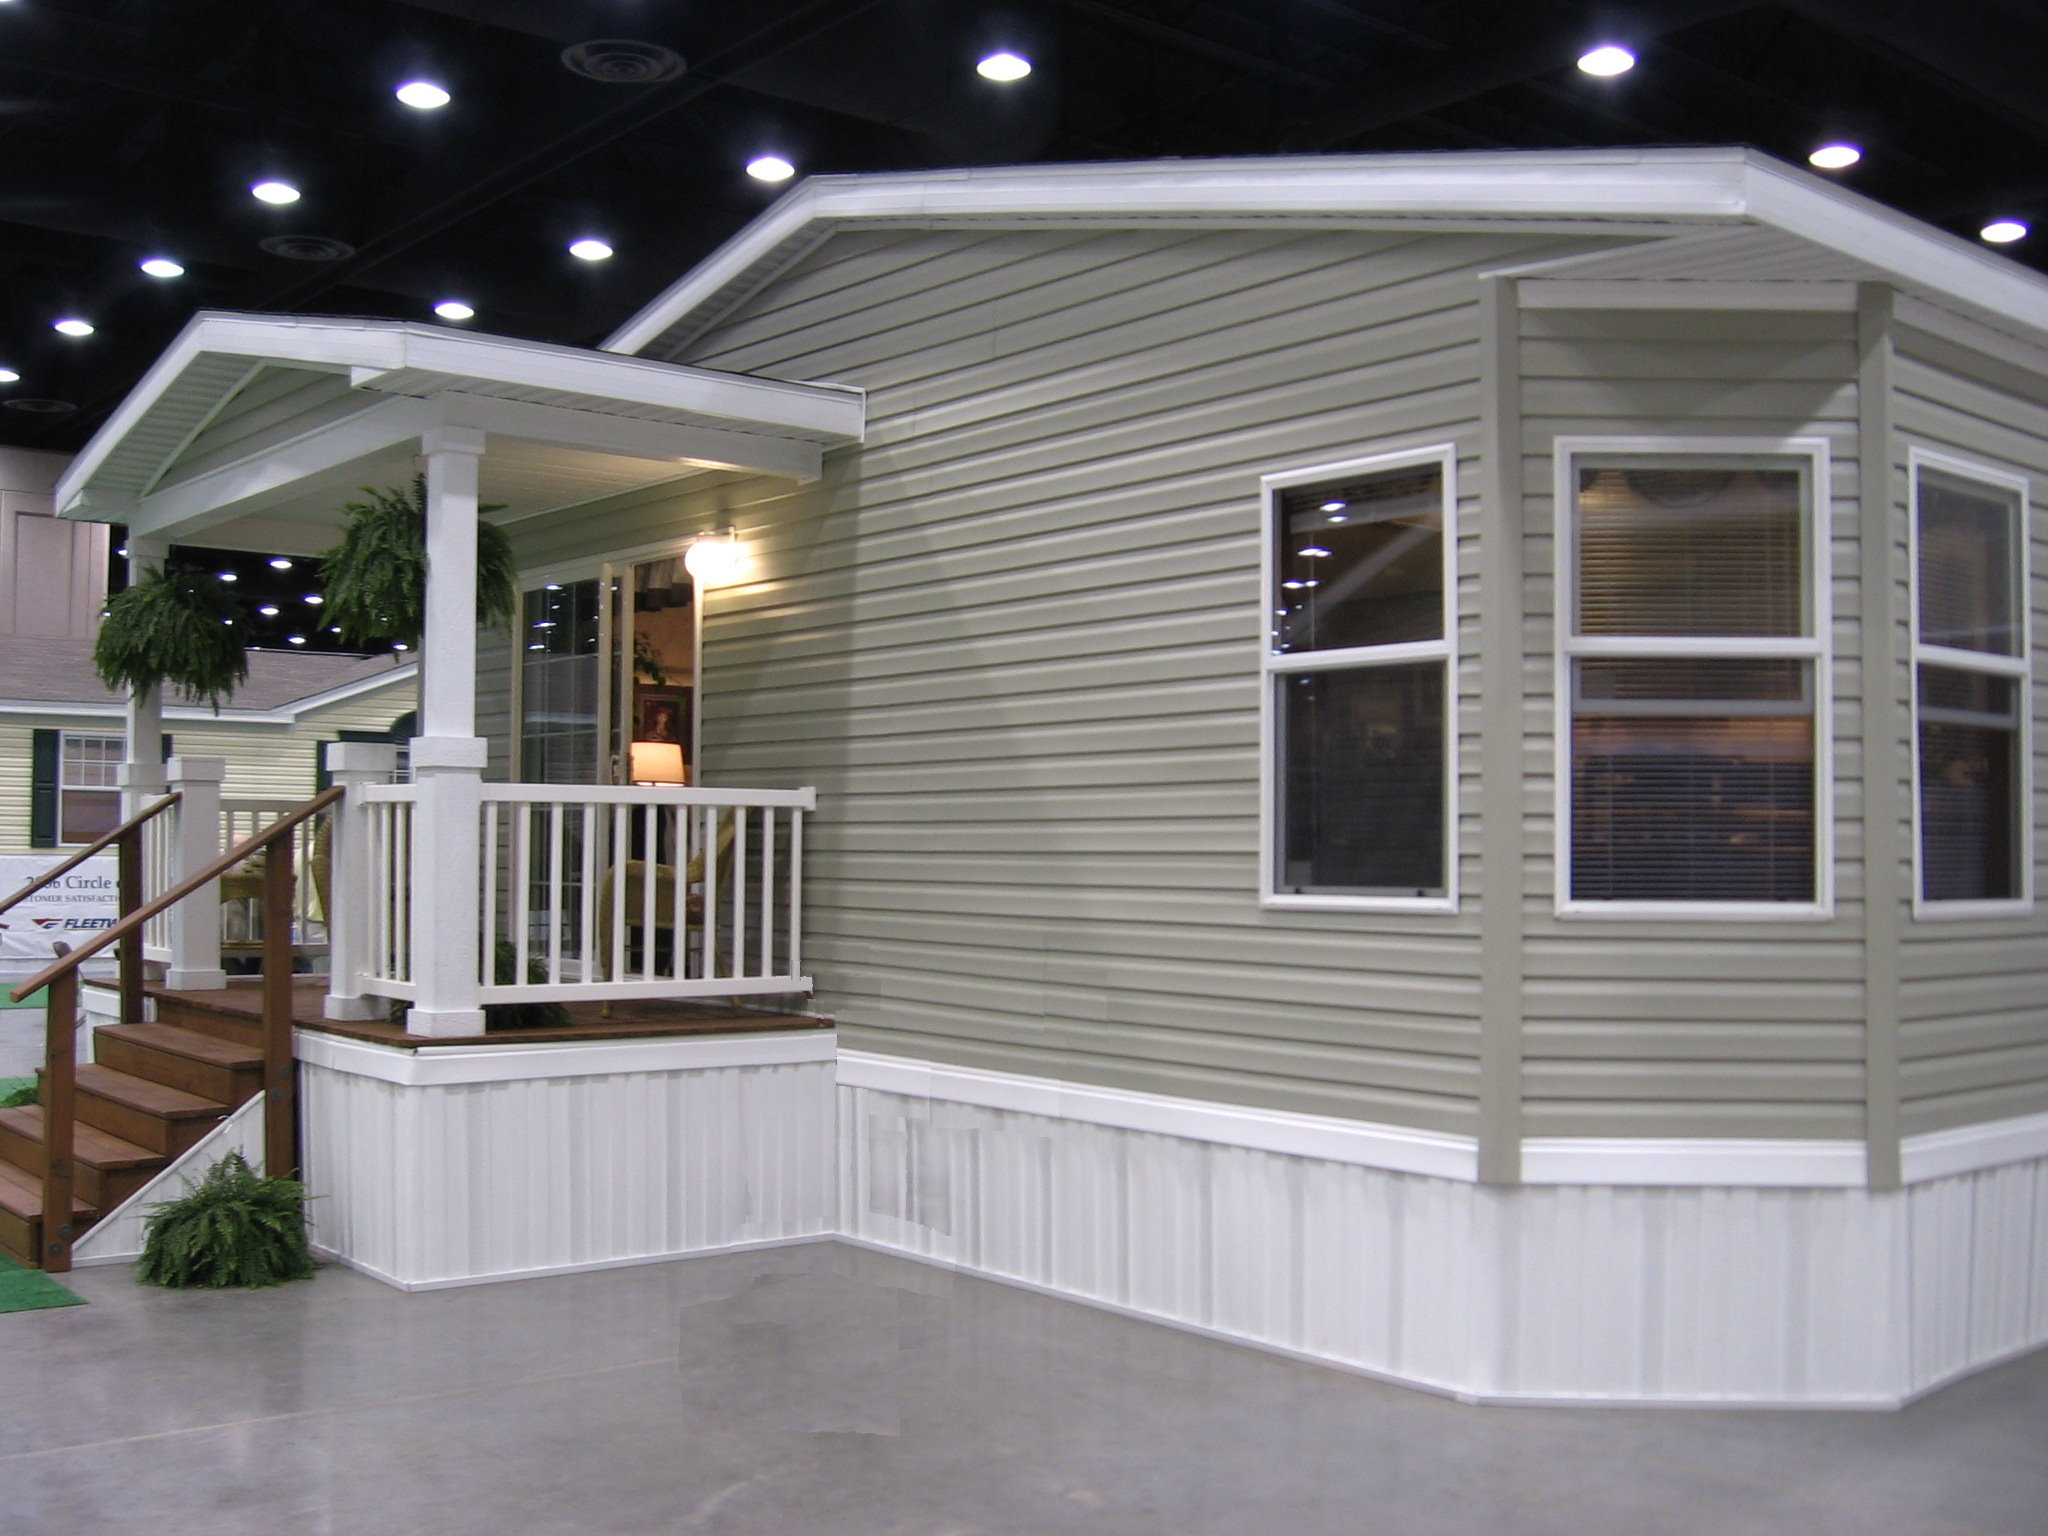 Are Manufactured Homes Built Well? on best flooring for mobile homes, best factory built homes, best looking mobile homes, best mobile home paint, best quality mobile home manufacturer, park homes,